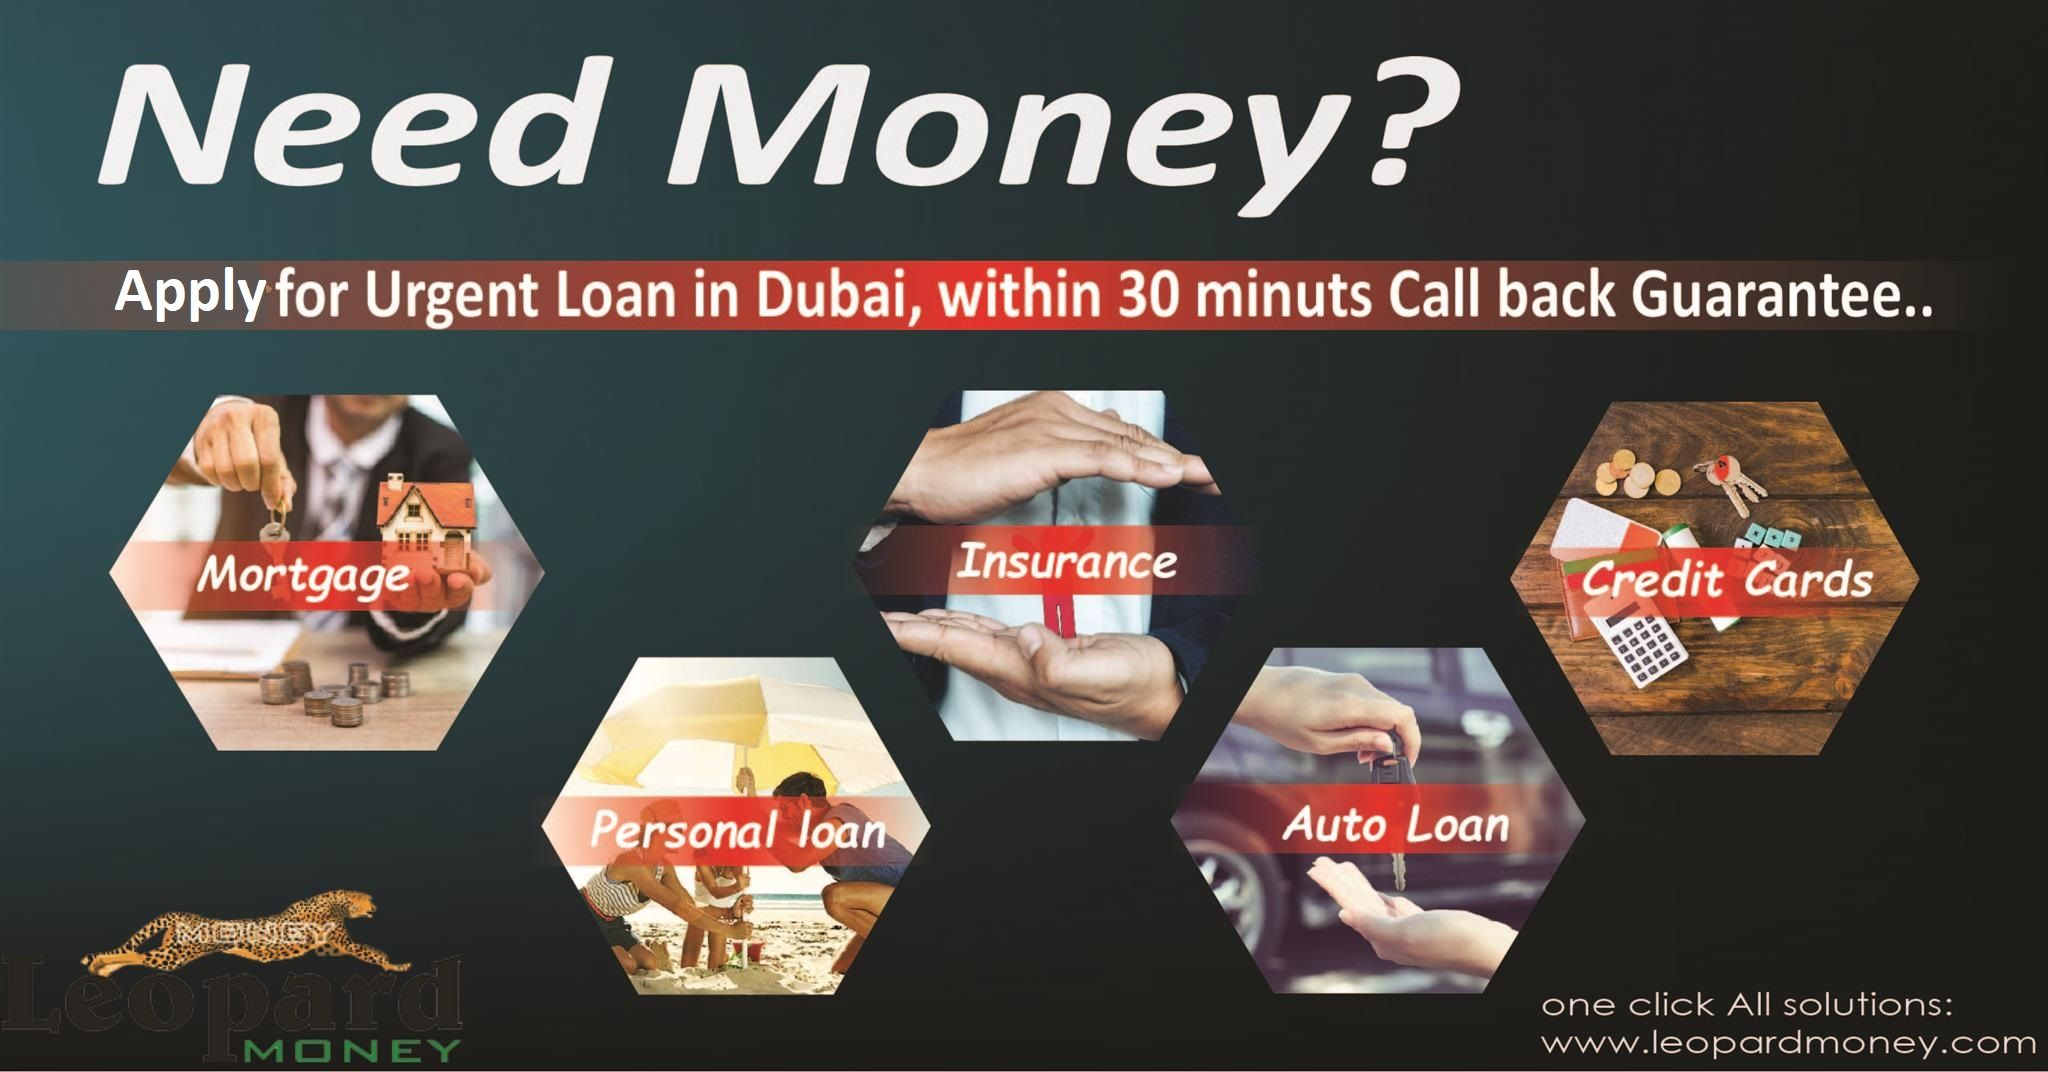 Noor Bank Personal Loan Personal Loans Loans For Poor Credit Islamic Bank